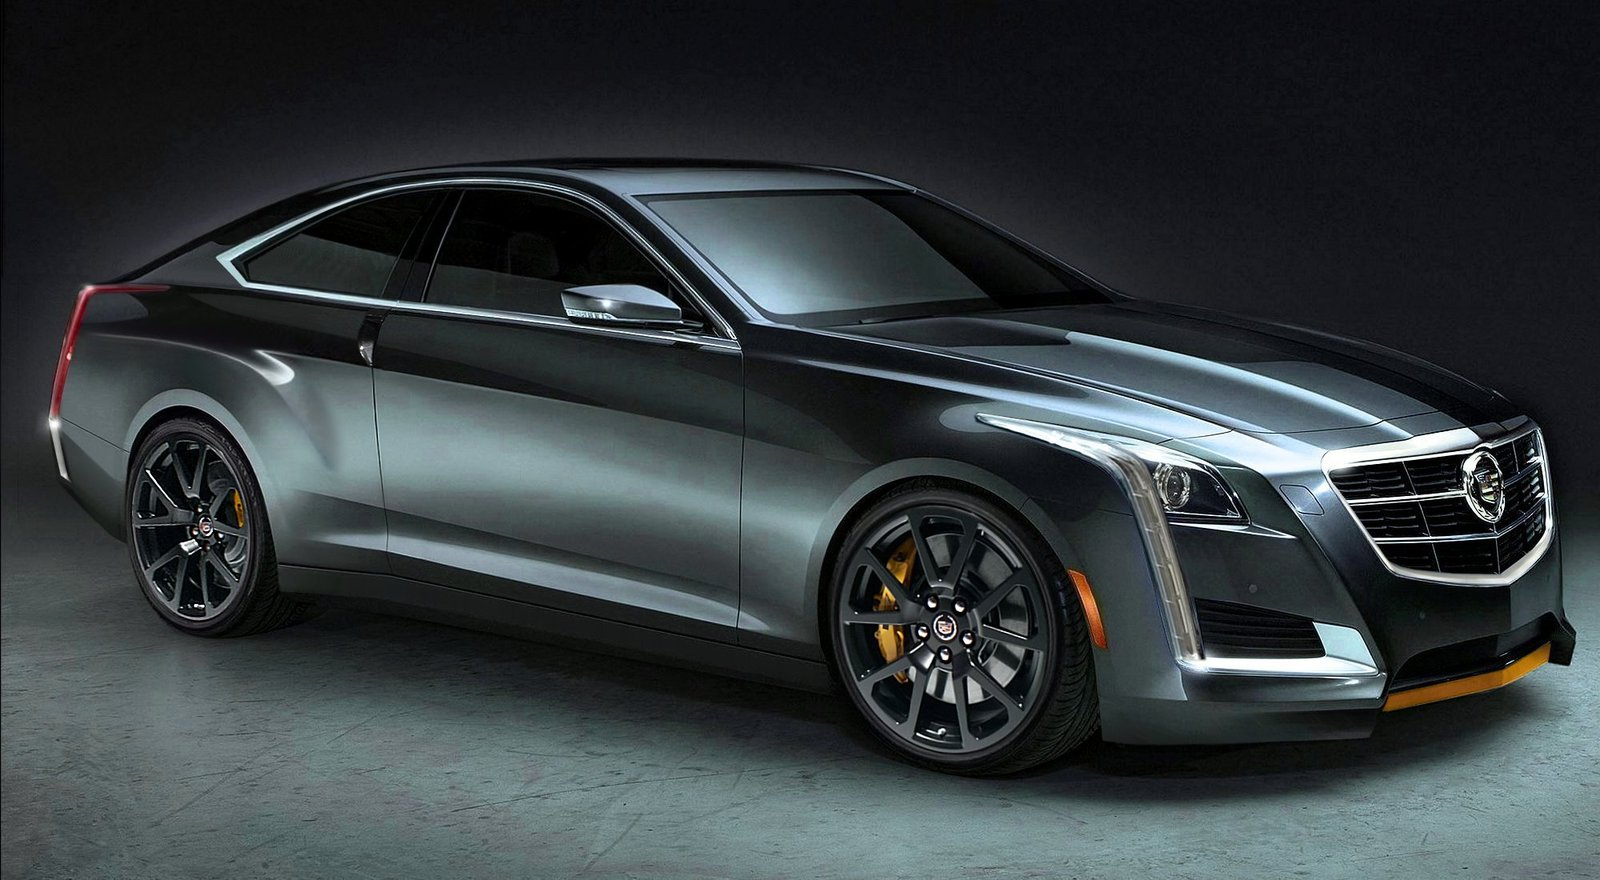 cadillac cts pictures #9